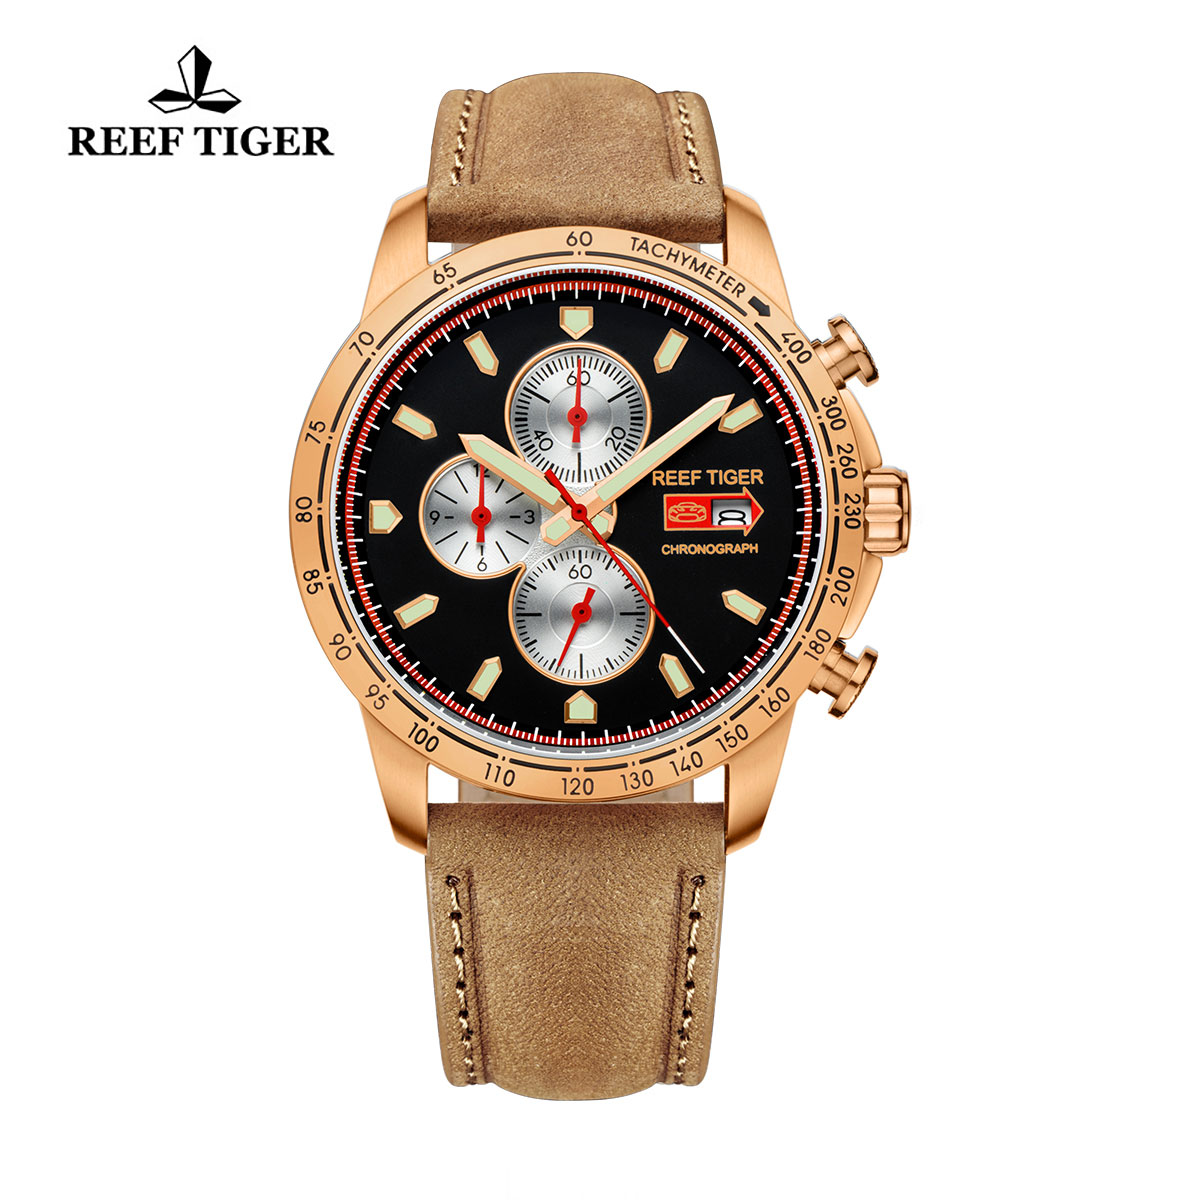 Reef Tiger Racing Casual Watch Rose Gold Black Dial Leather Strap Chronograph Watch RGA3029-PBB